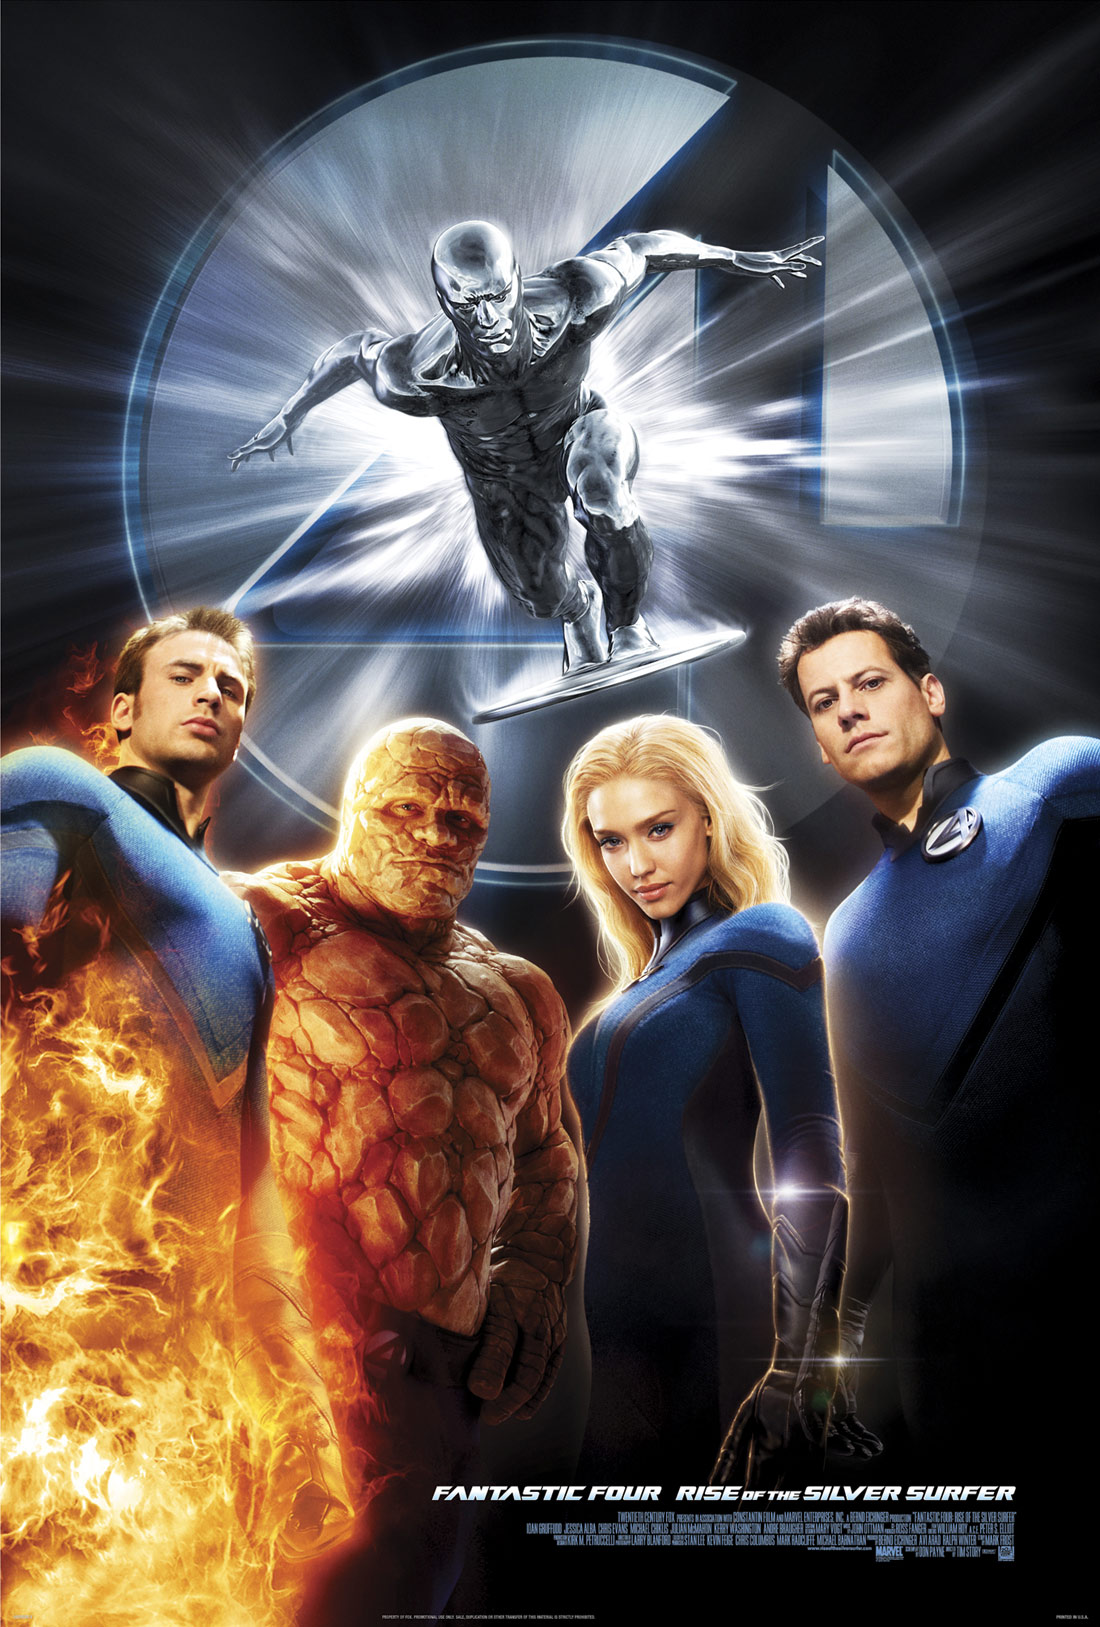 Fantastic Four The Rise of the Silver Surfer